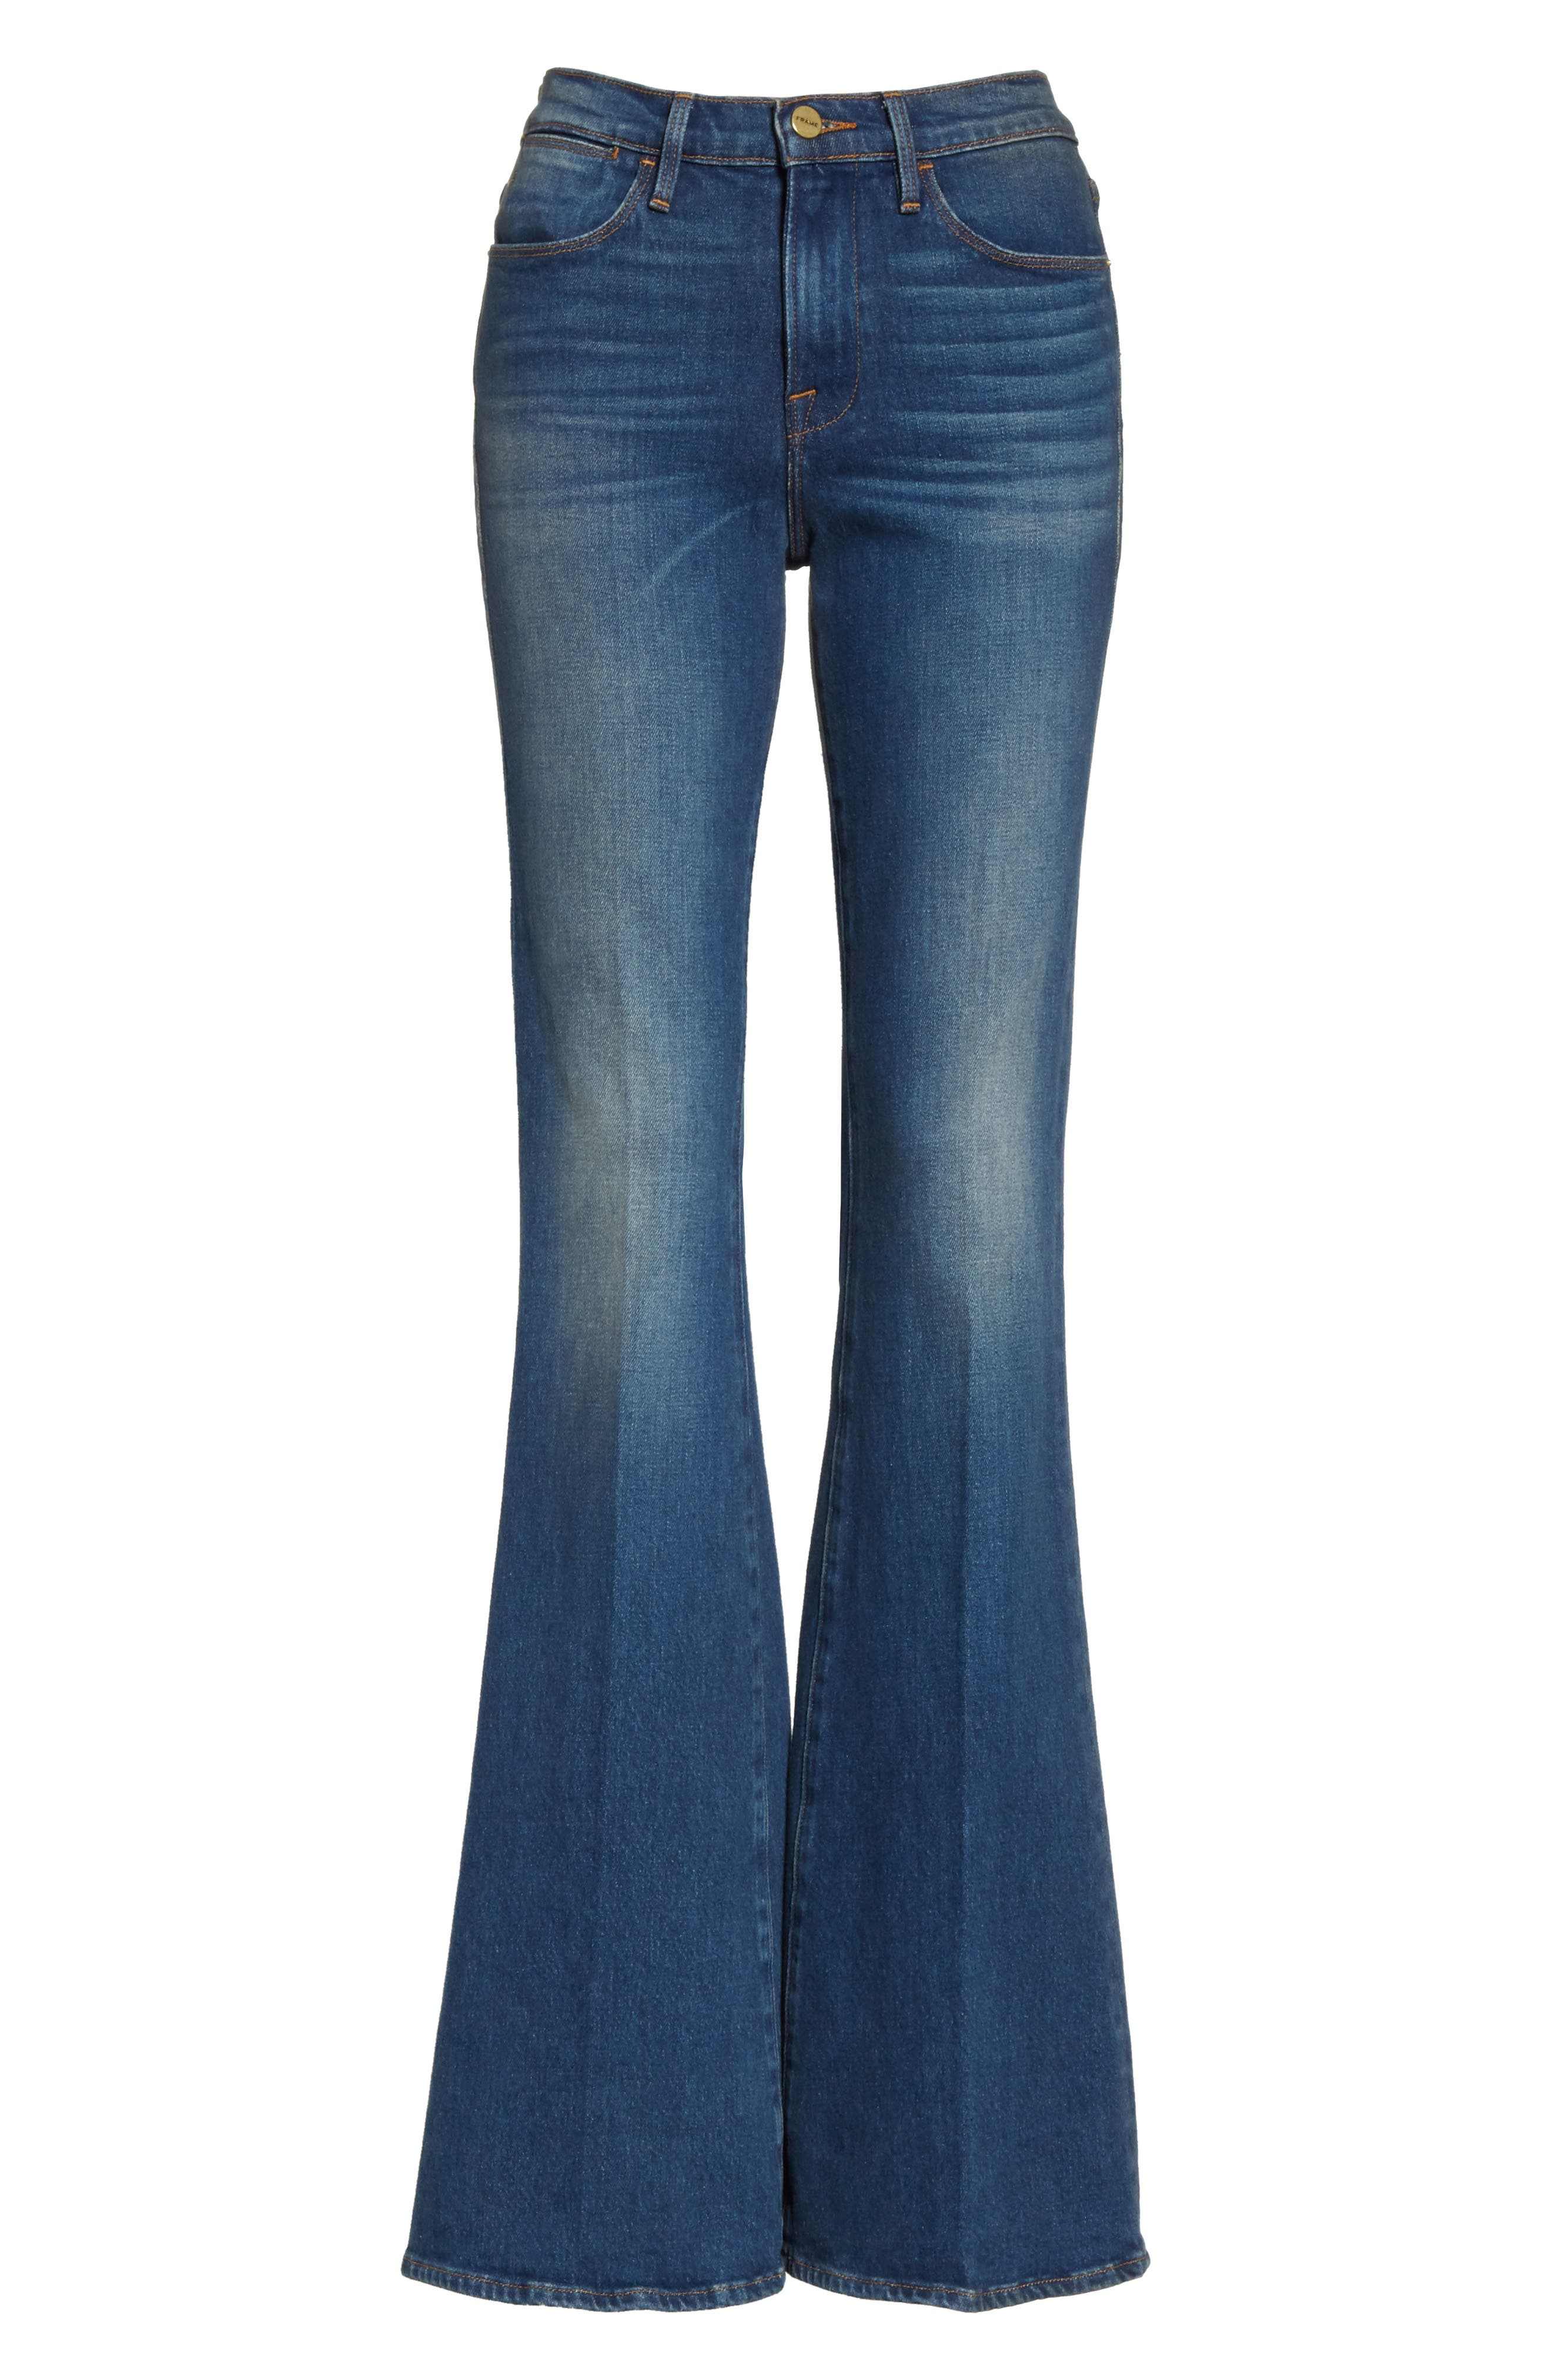 Le High Flare Jeans,                             Alternate thumbnail 7, color,                             Aldwoth